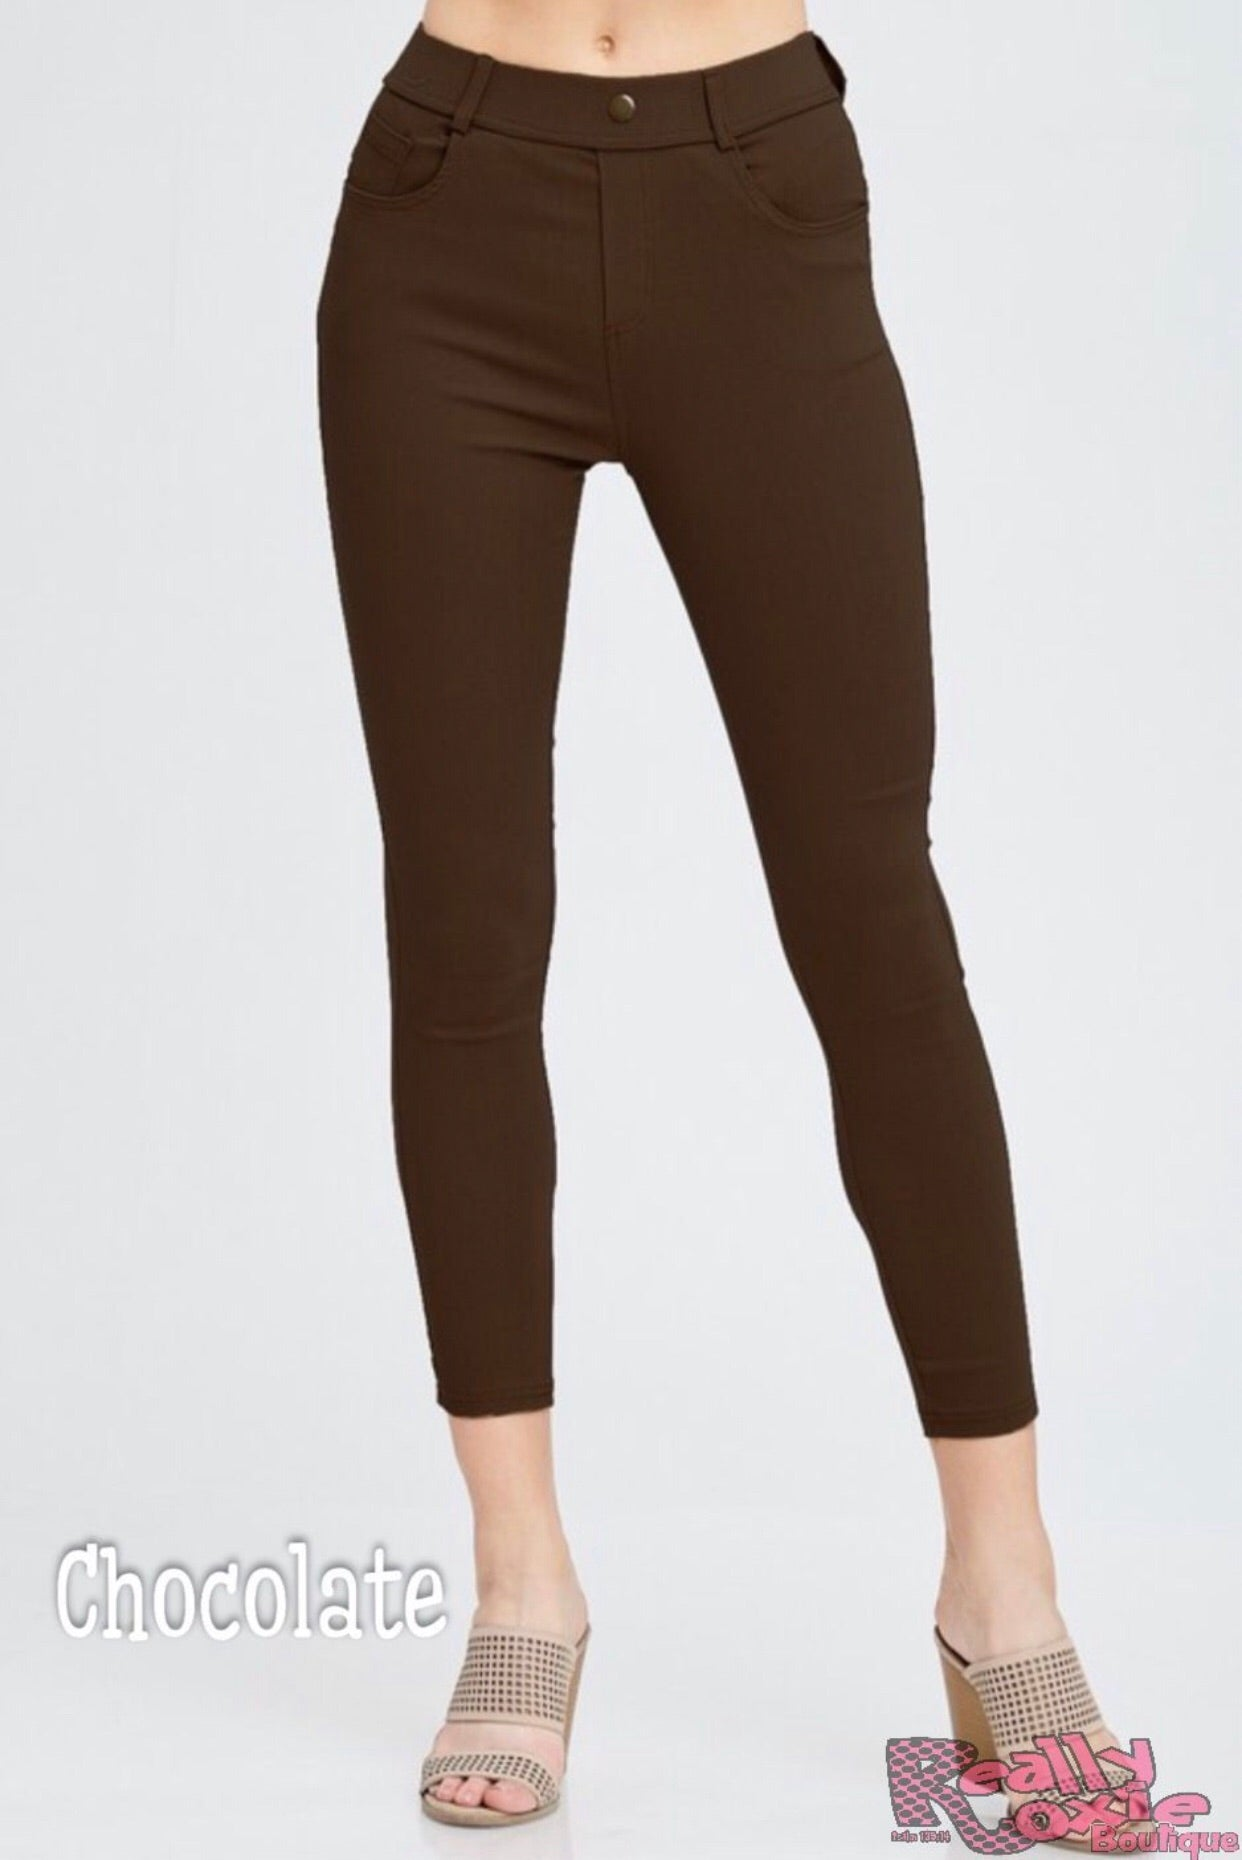 Super Stretchy Jeggings (10 Colors)